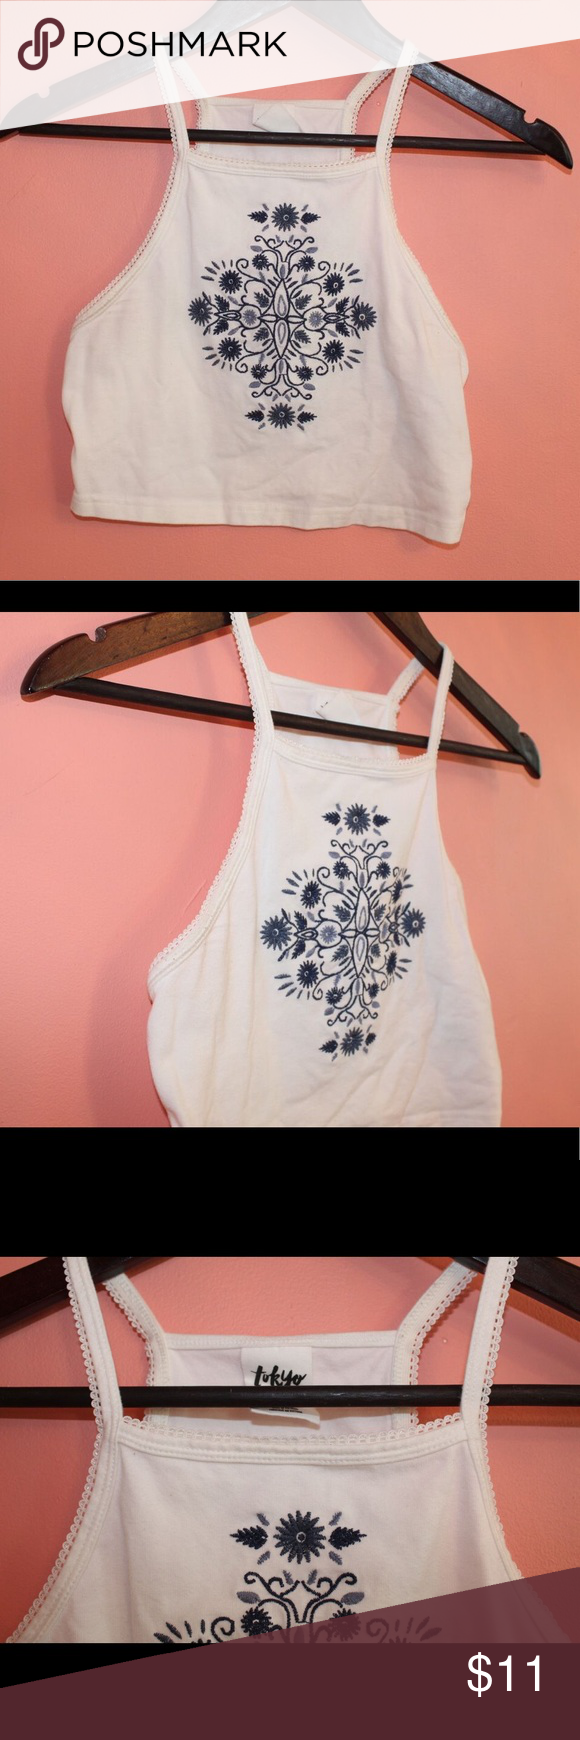 White and blue halter top! In great condition. No stains, wears or tears. Tokyo Darling Tops Tank Tops